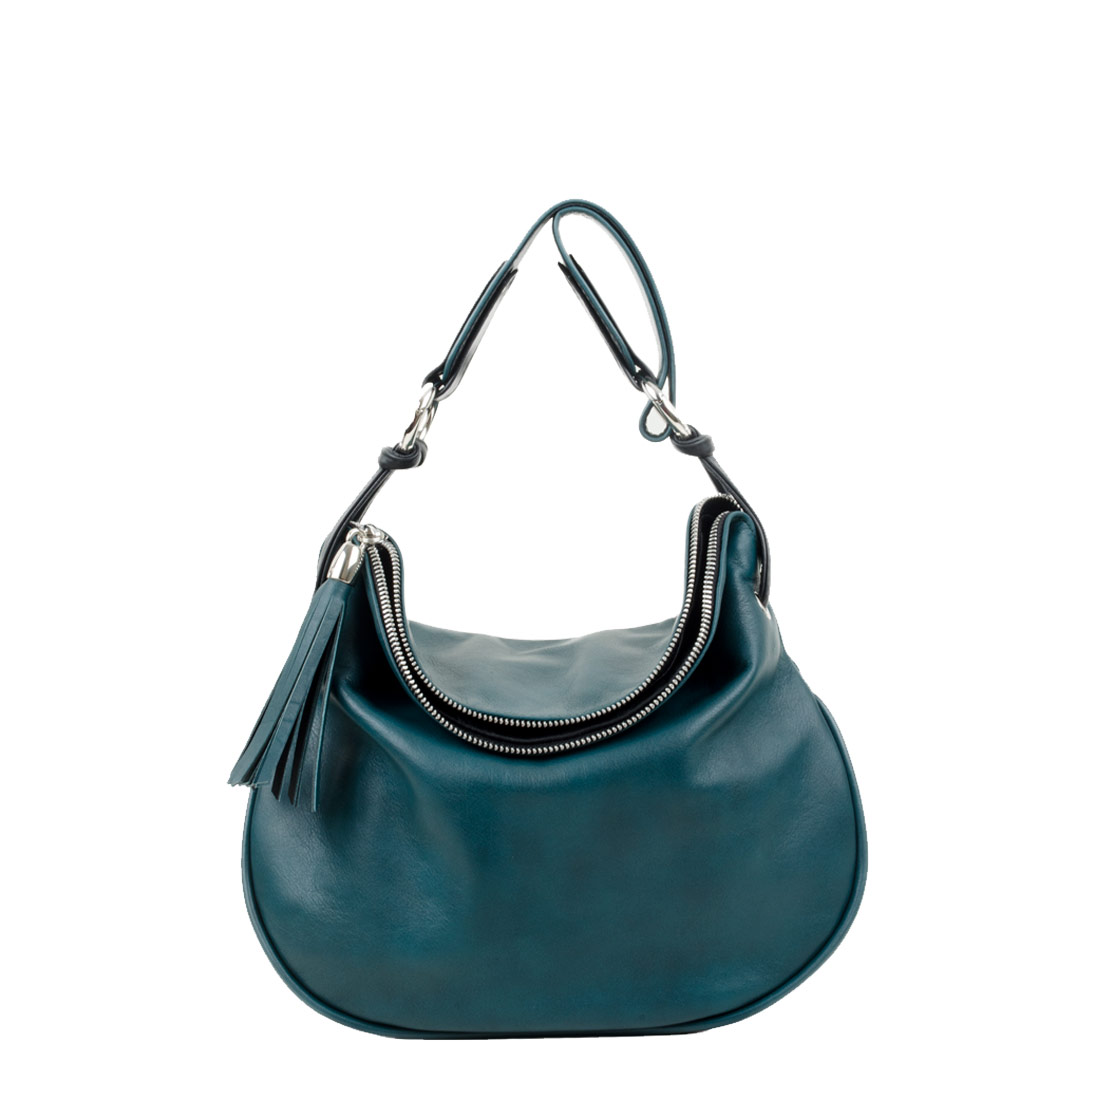 Milly Teal Leather Shoulder Bag